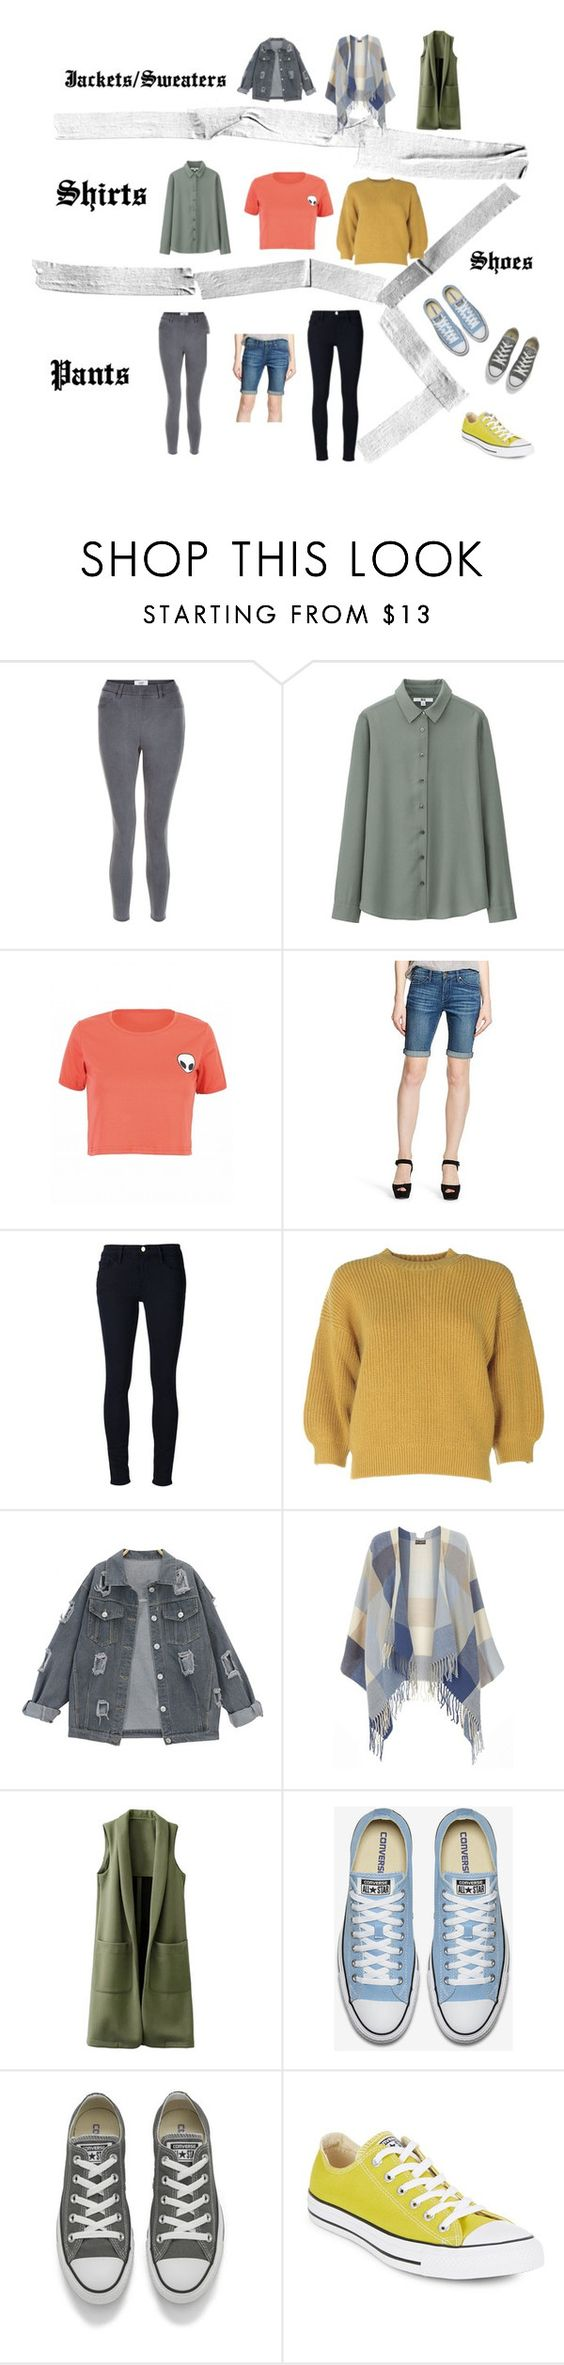 """Outfits"" by deadmagenta on Polyvore featuring New Look, Uniqlo, Mossimo, Frame Denim, 3.1 Phillip Lim, Dorothy Perkins and Converse"